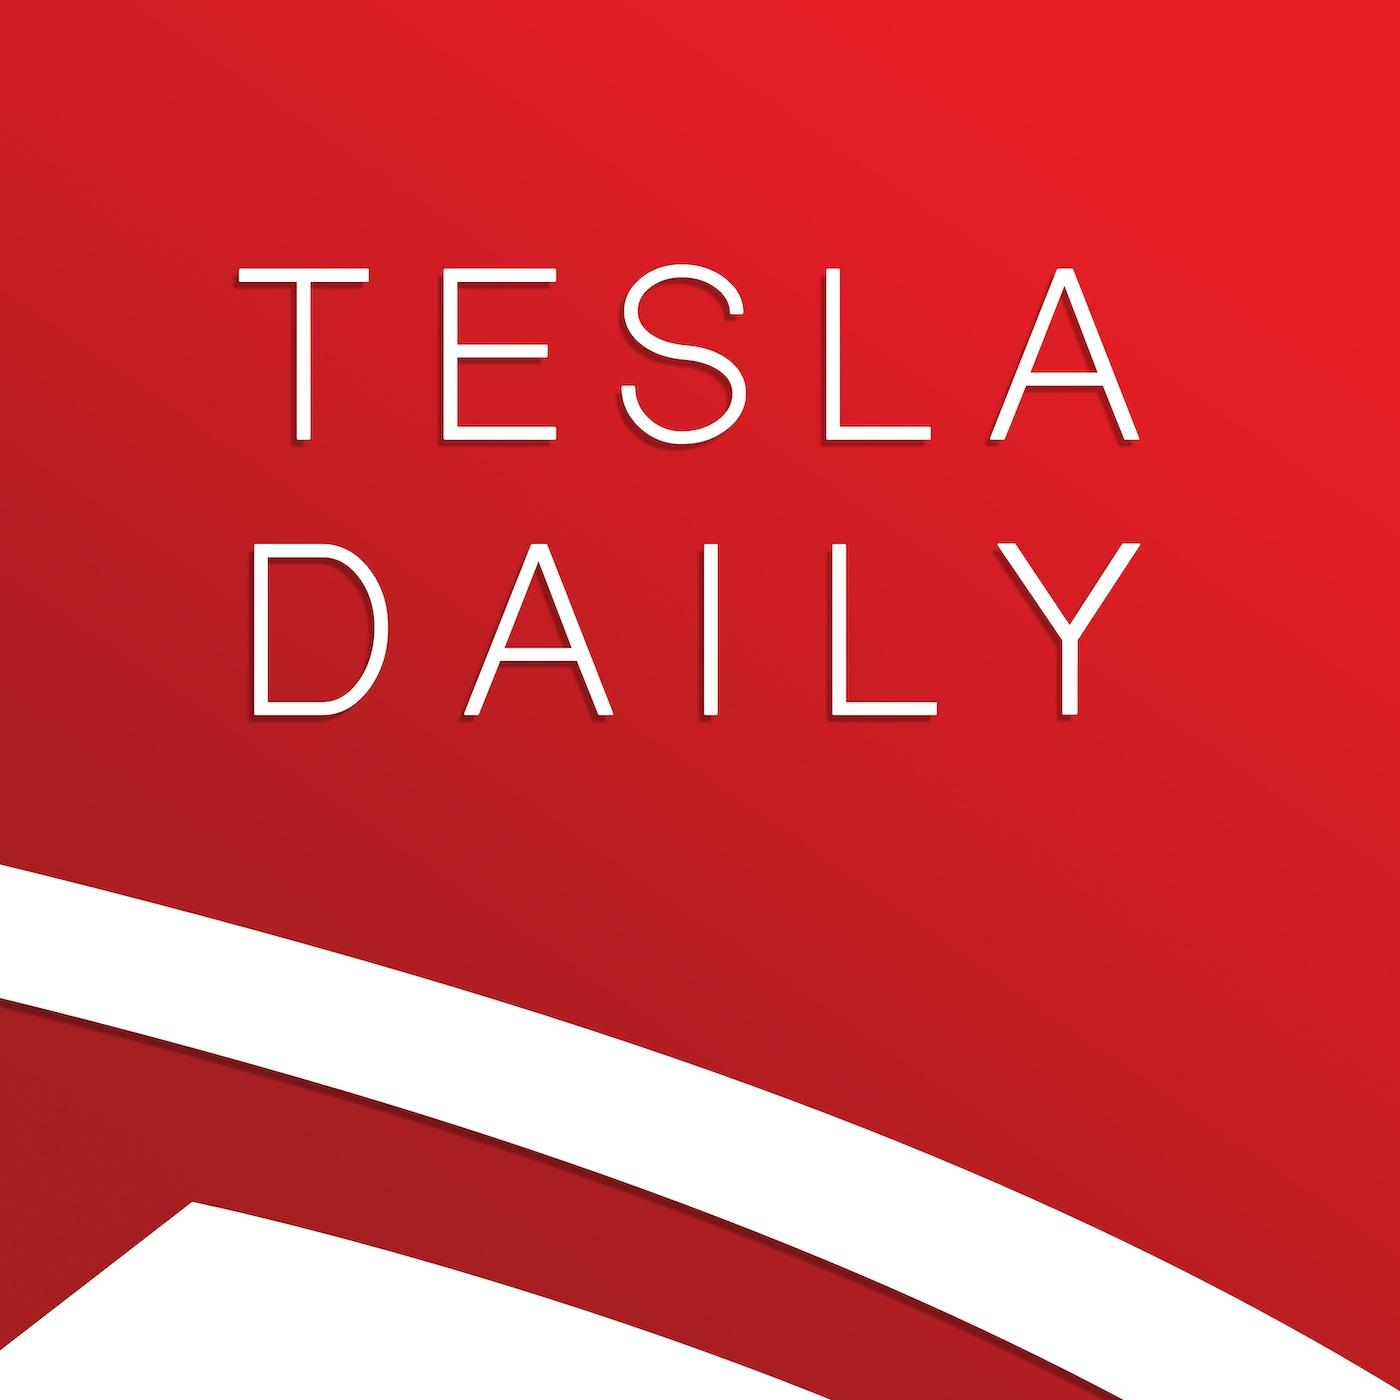 TSLA Downgraded by Goldman Sachs & Morgan Stanley, Sign Recognition, Solar Roof, Electric F-150 (06.12.20)